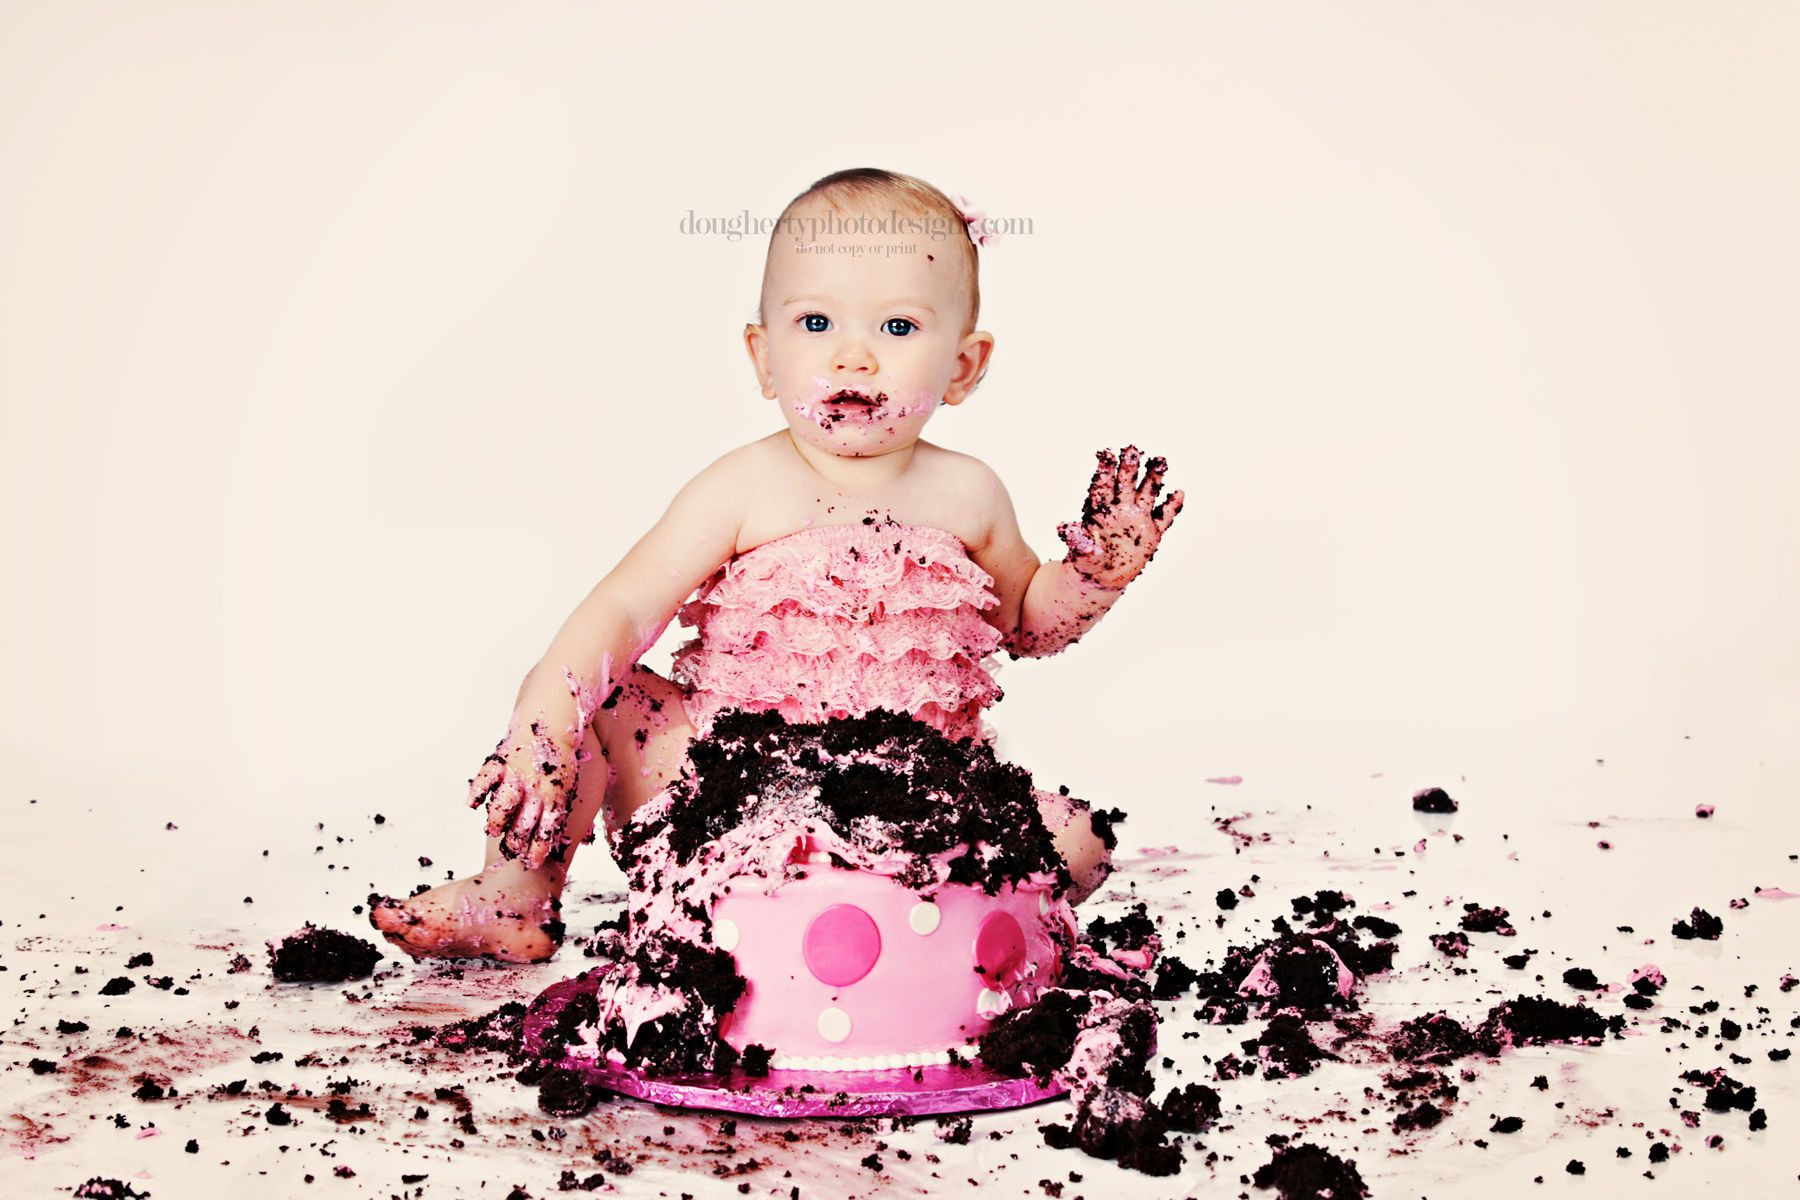 Best ideas about Birthday Cake Smash . Save or Pin bobby s 1st birthday cake smash cake smashes Now.